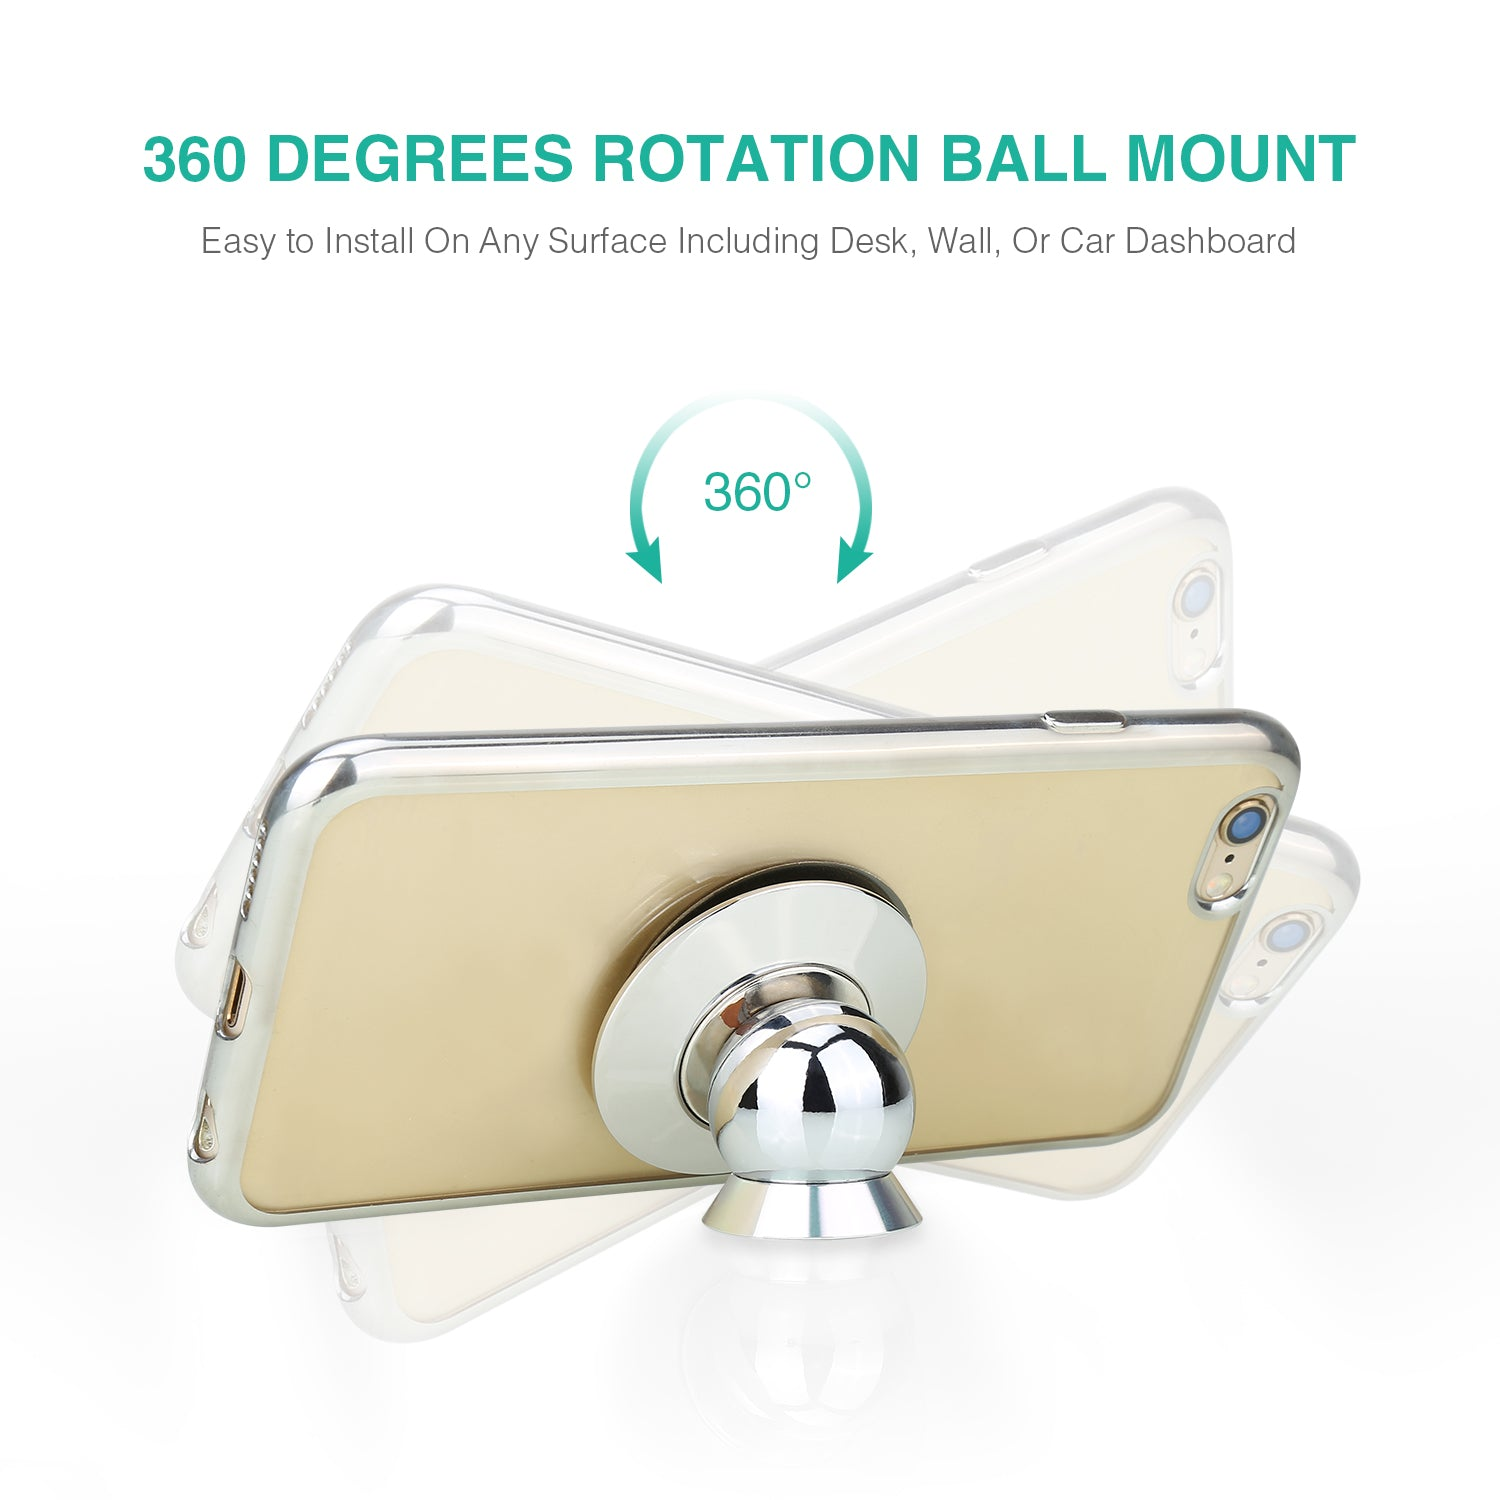 360 Degrees Magnetic Cell Phone Holder High Quality Adhesive Base for All Phone Sizes, Apple Or Android